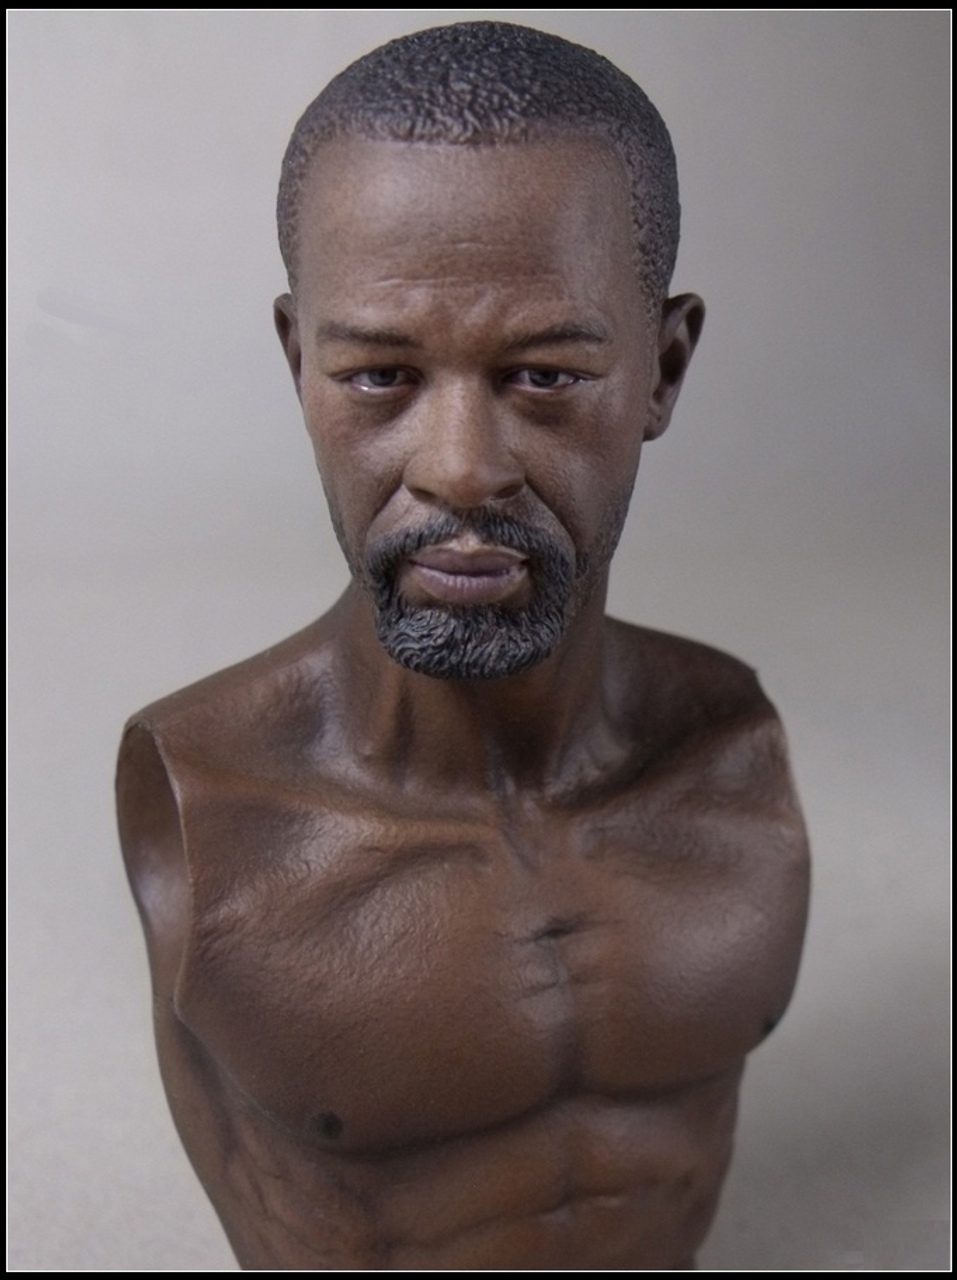 [WB-AT006] World Box Articulated Male Body with African